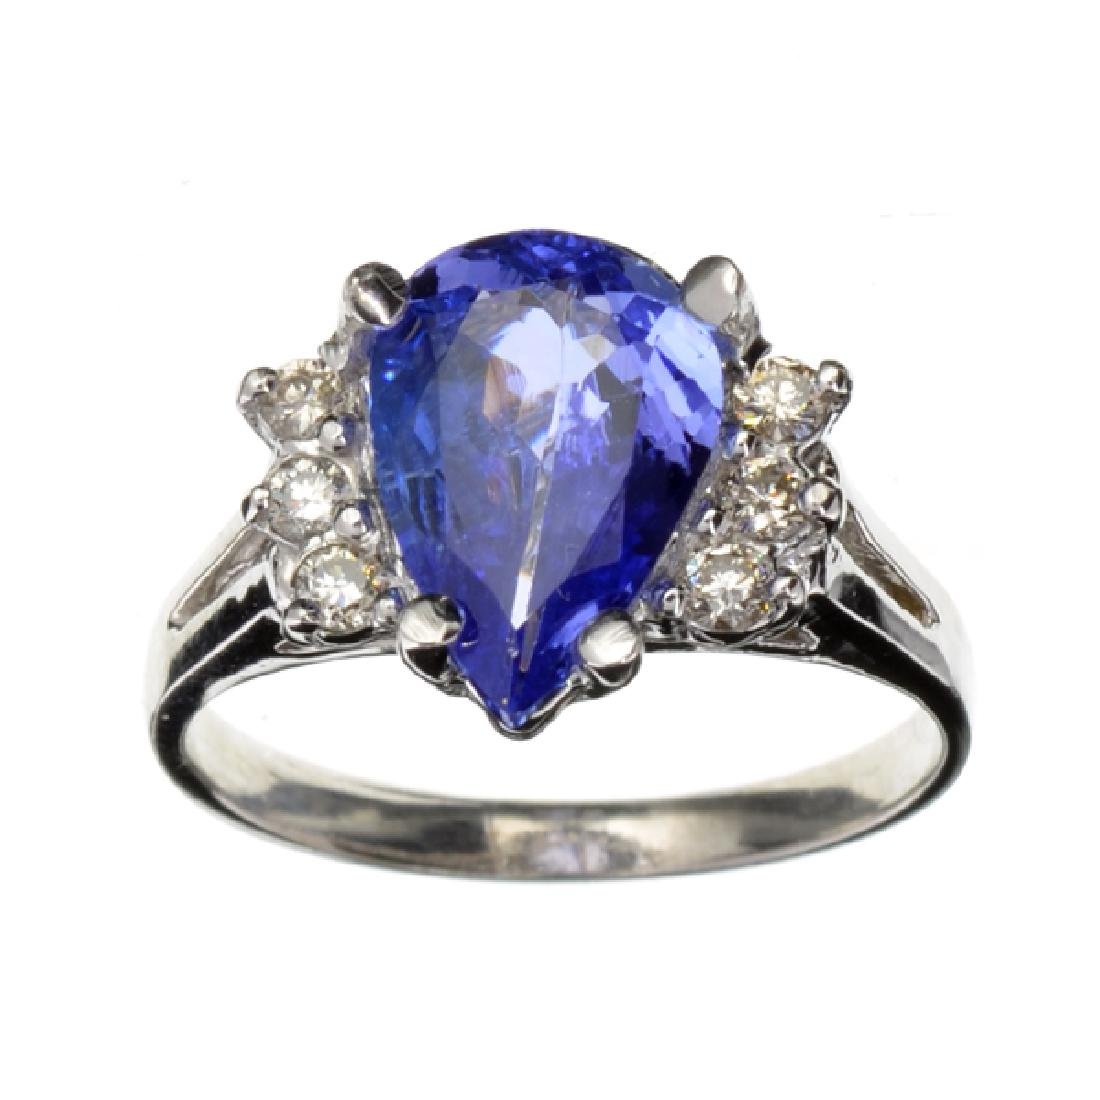 APP: 4.7k 14 kt. White Gold, 1.74CT Pear Cut Tanzanite